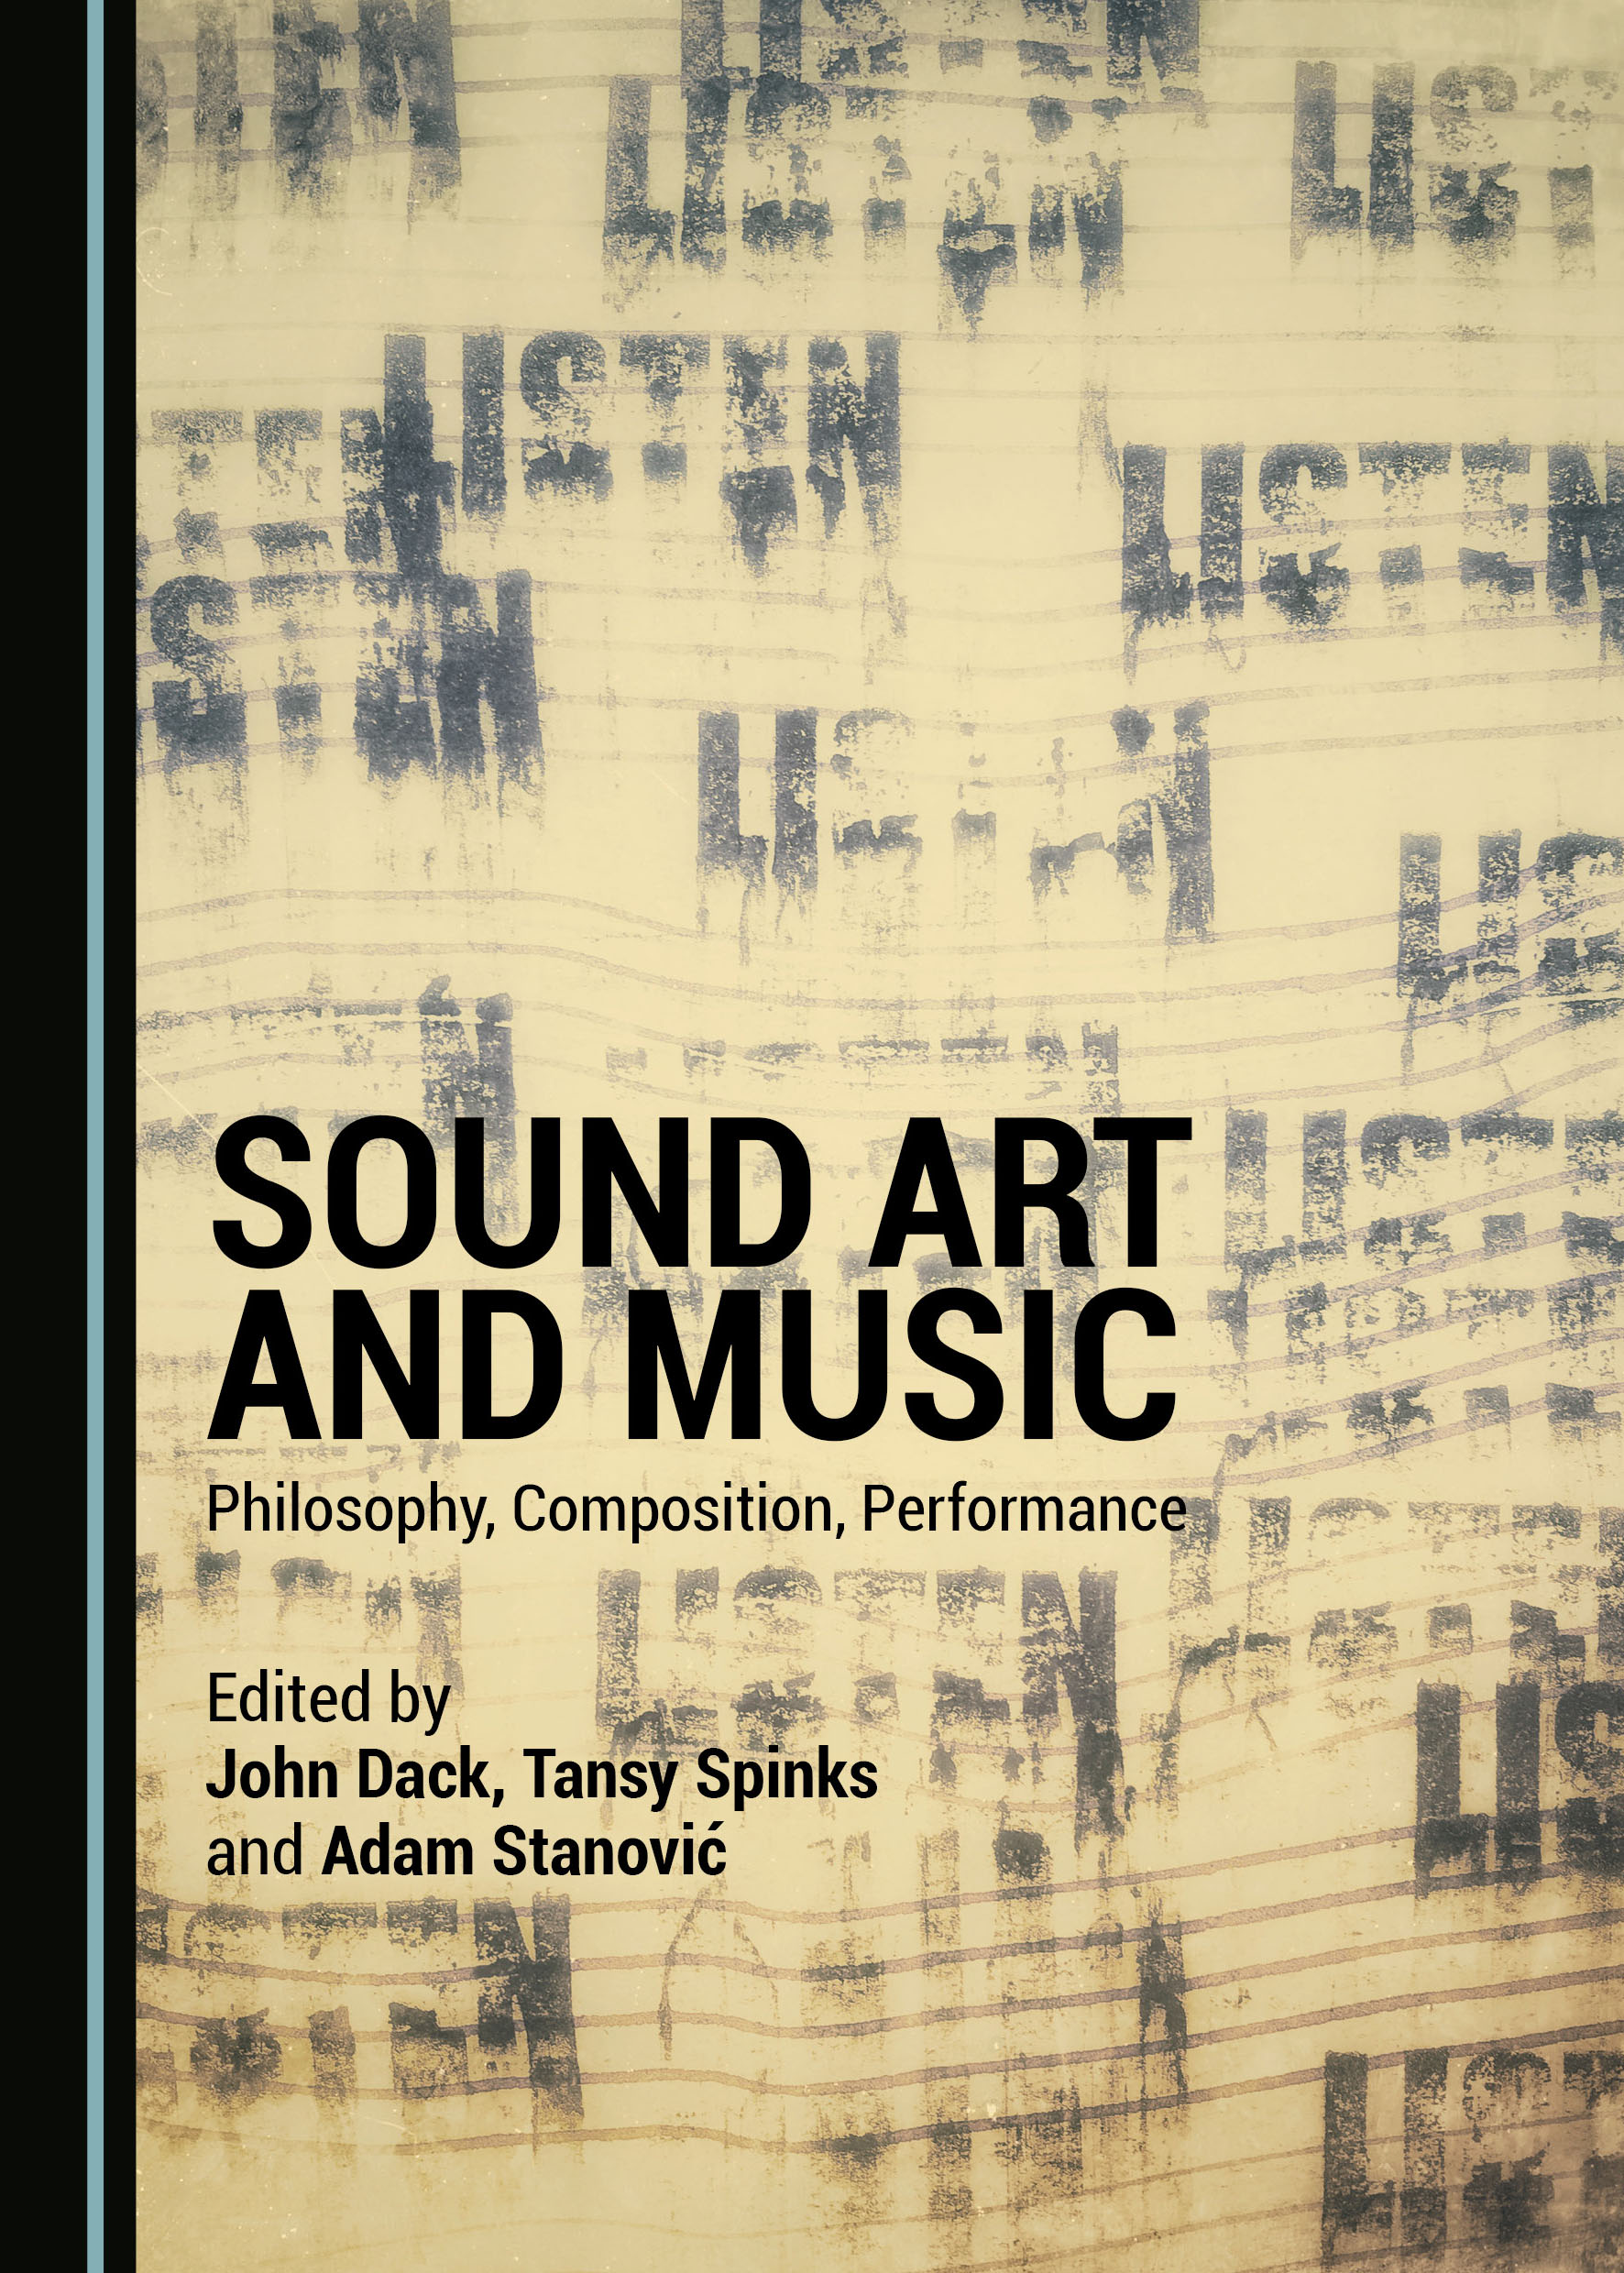 Sound Art and Music: Philosophy, Composition, Performance